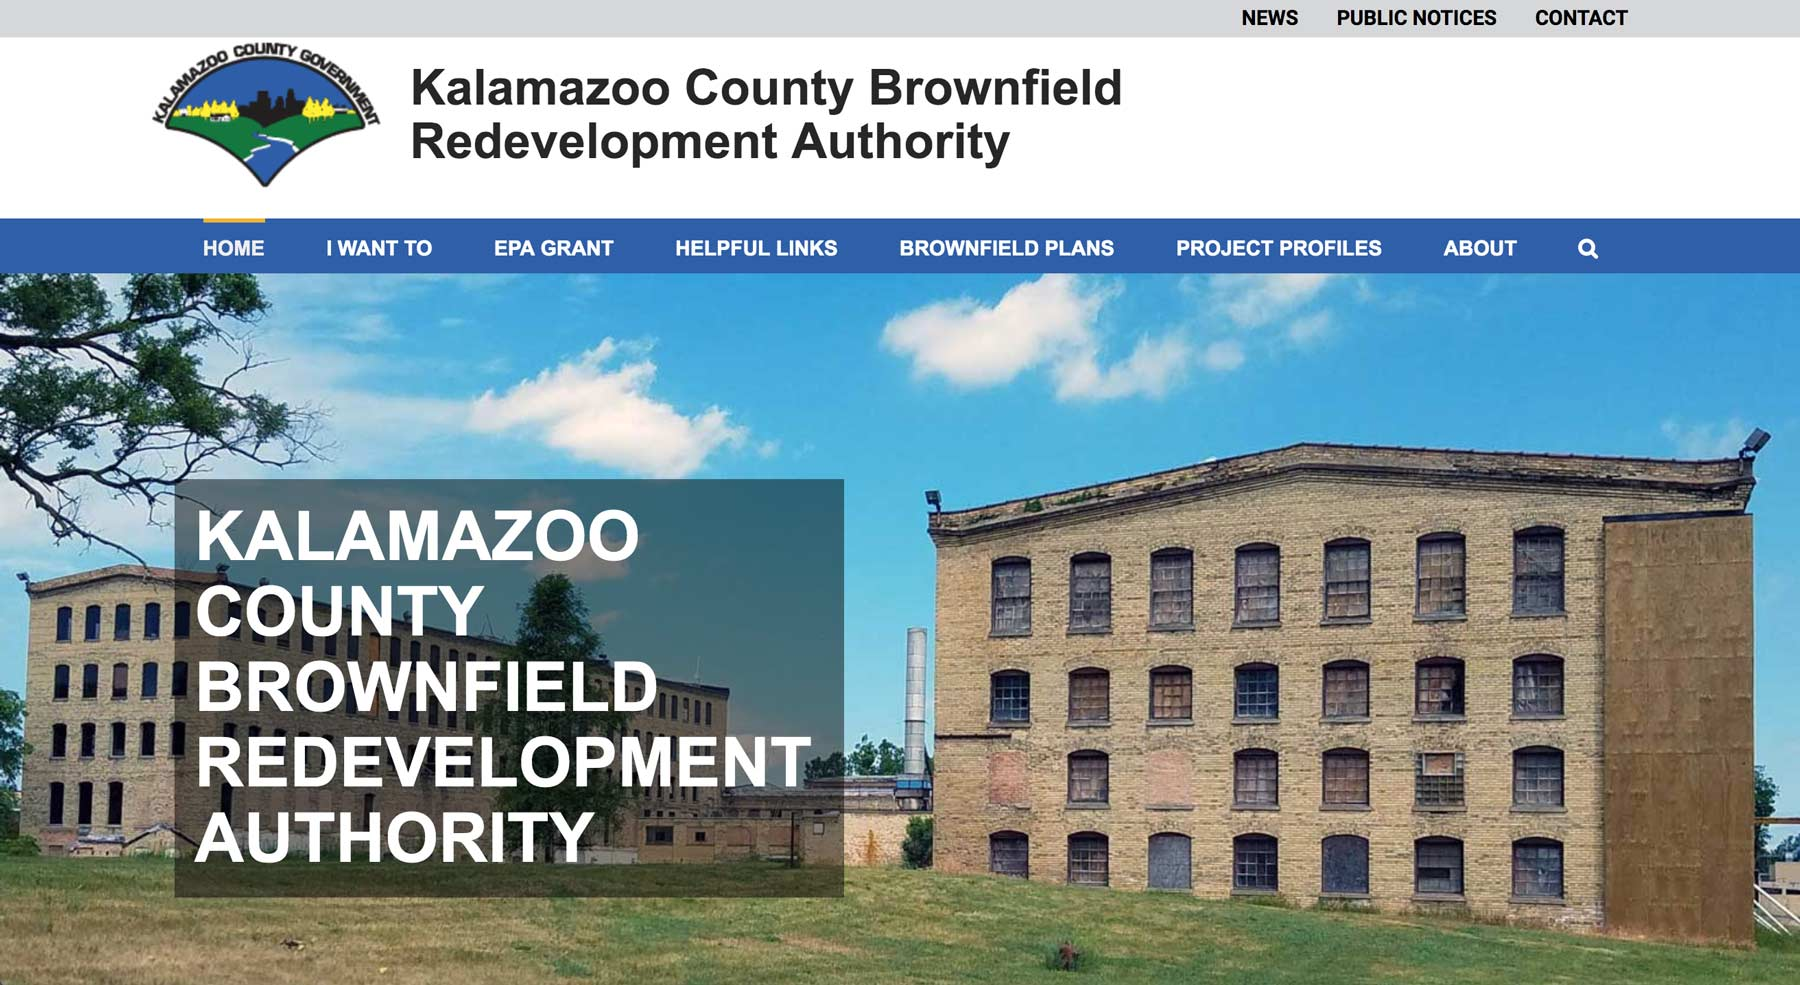 website design for kalamazoo county brownfield redevelopment authority